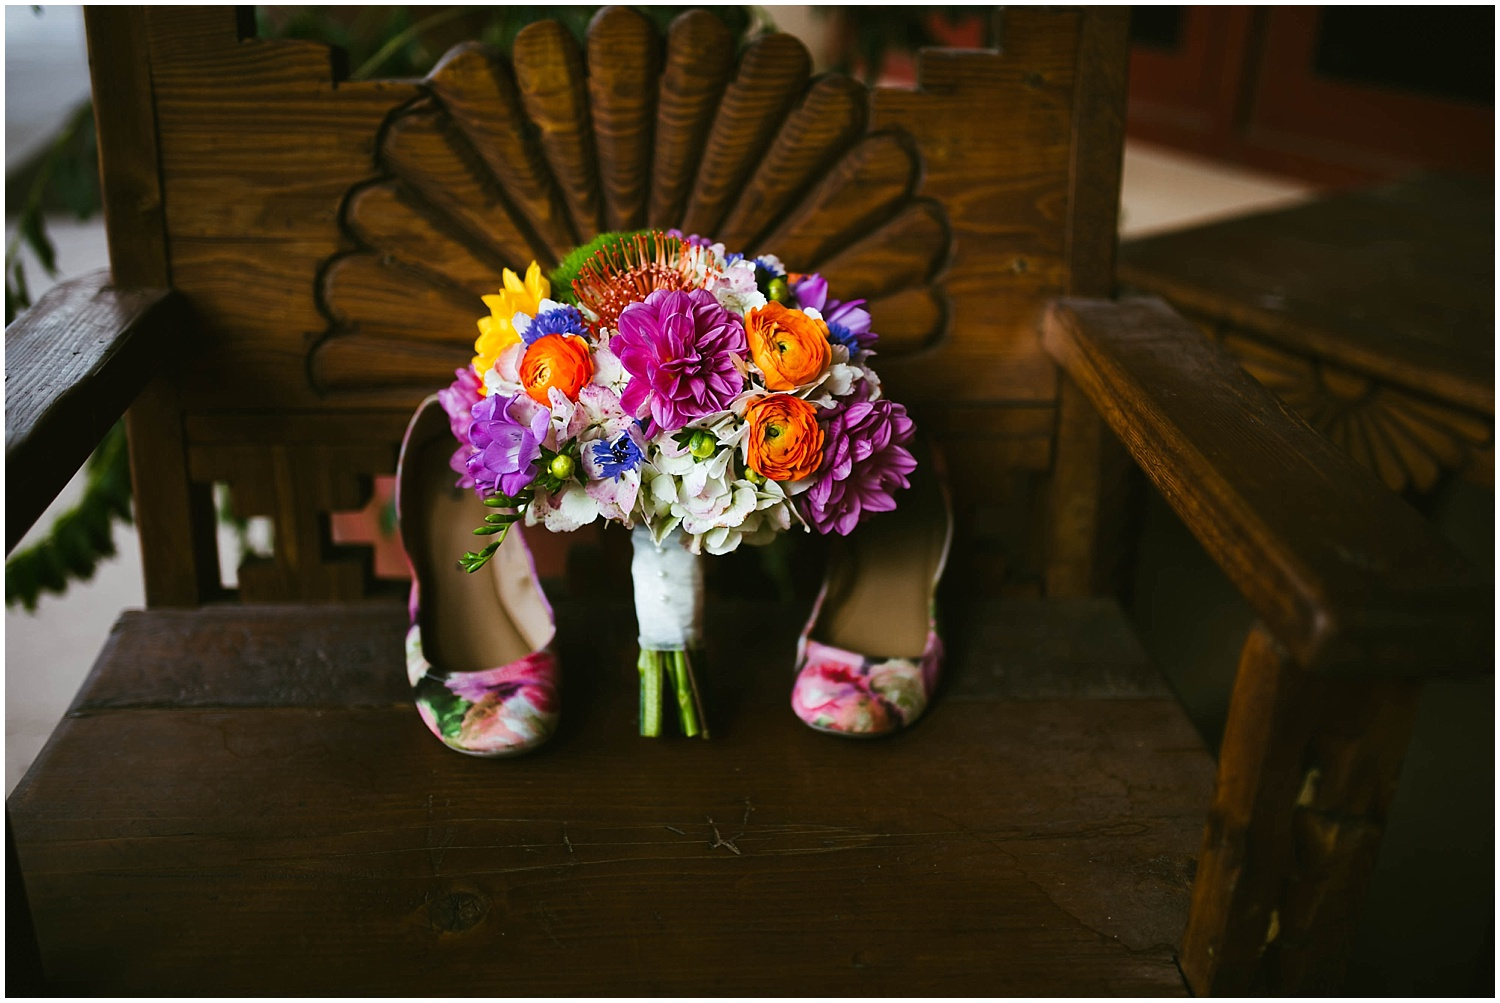 Wedding Shoes Inspiration by Jasper K Photography | Ryan proposed to Mallory at the Studio Ghibli Museum in Mitaka, Japan so it was fitting that their beautiful wedding day at Nature Pointe weddings in Tijeras, New Mexico was like a Miyazaki film come to life. A lot of planning went into their wedding. The magic of Miyazaki's films is unlike any other so incorporating the magnificence of his imagination into Mallory + Ryan's wedding day was a must. The intricacy of their wedding details were absolutely AMAZING!